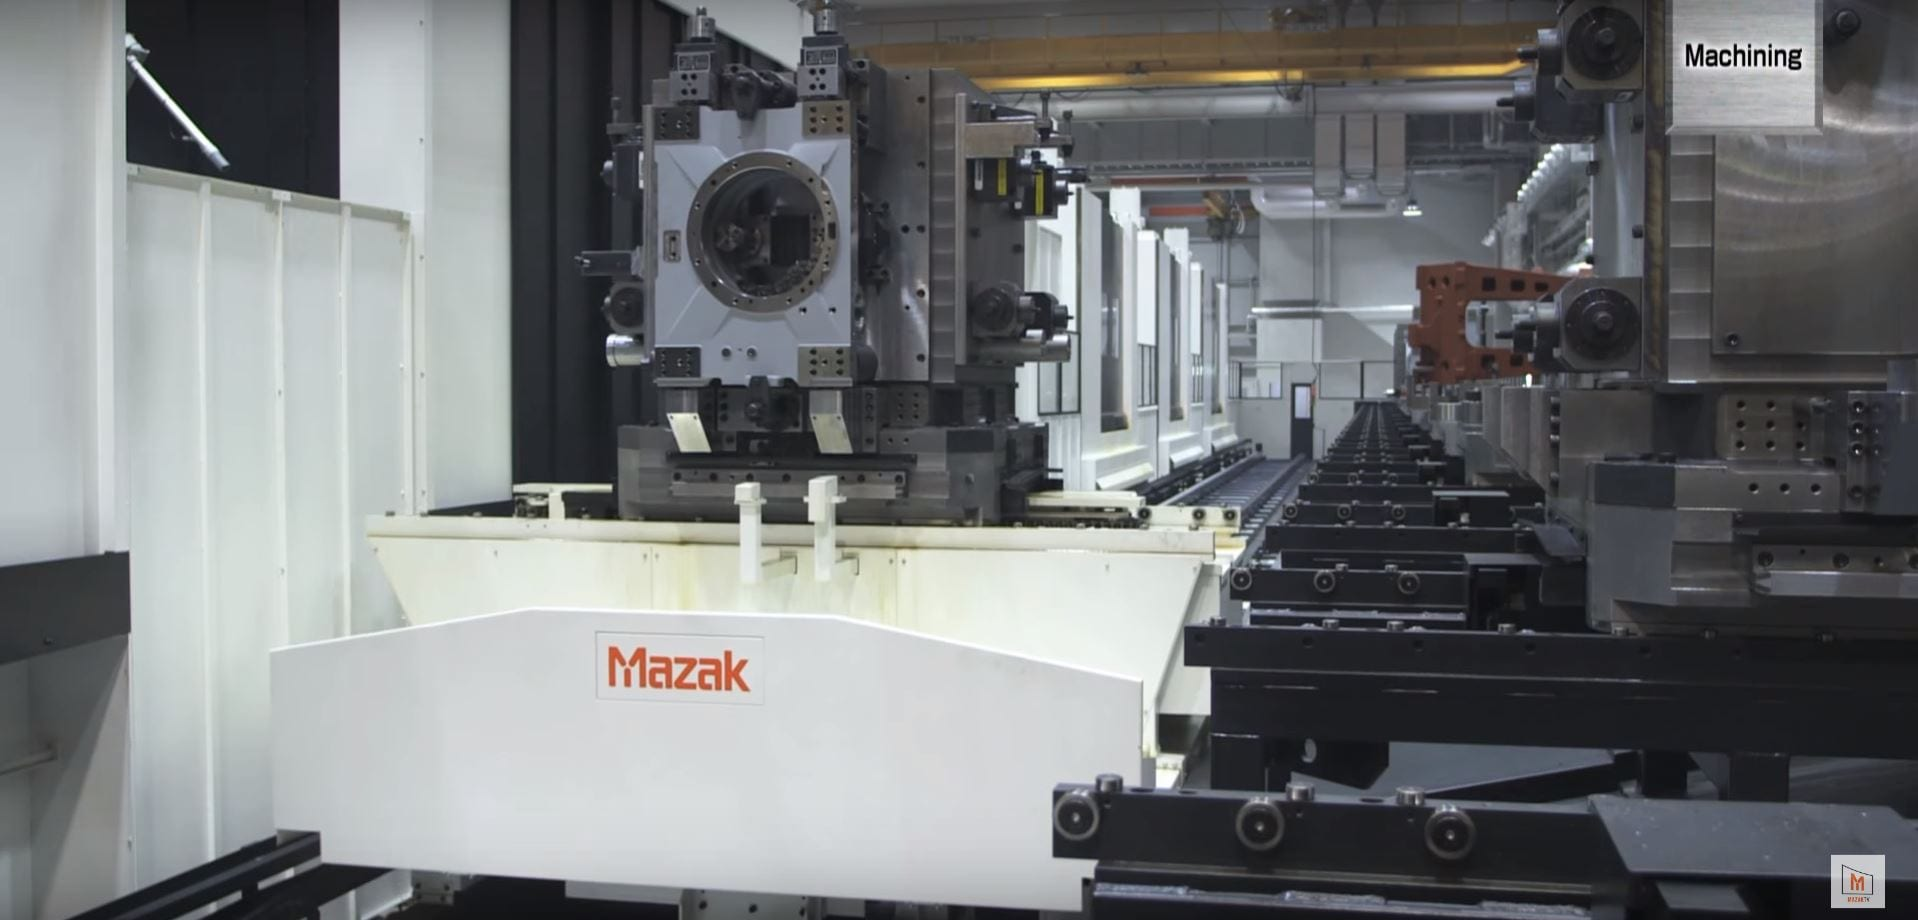 Cisco provides Mazak with fog apps for factory maintenance